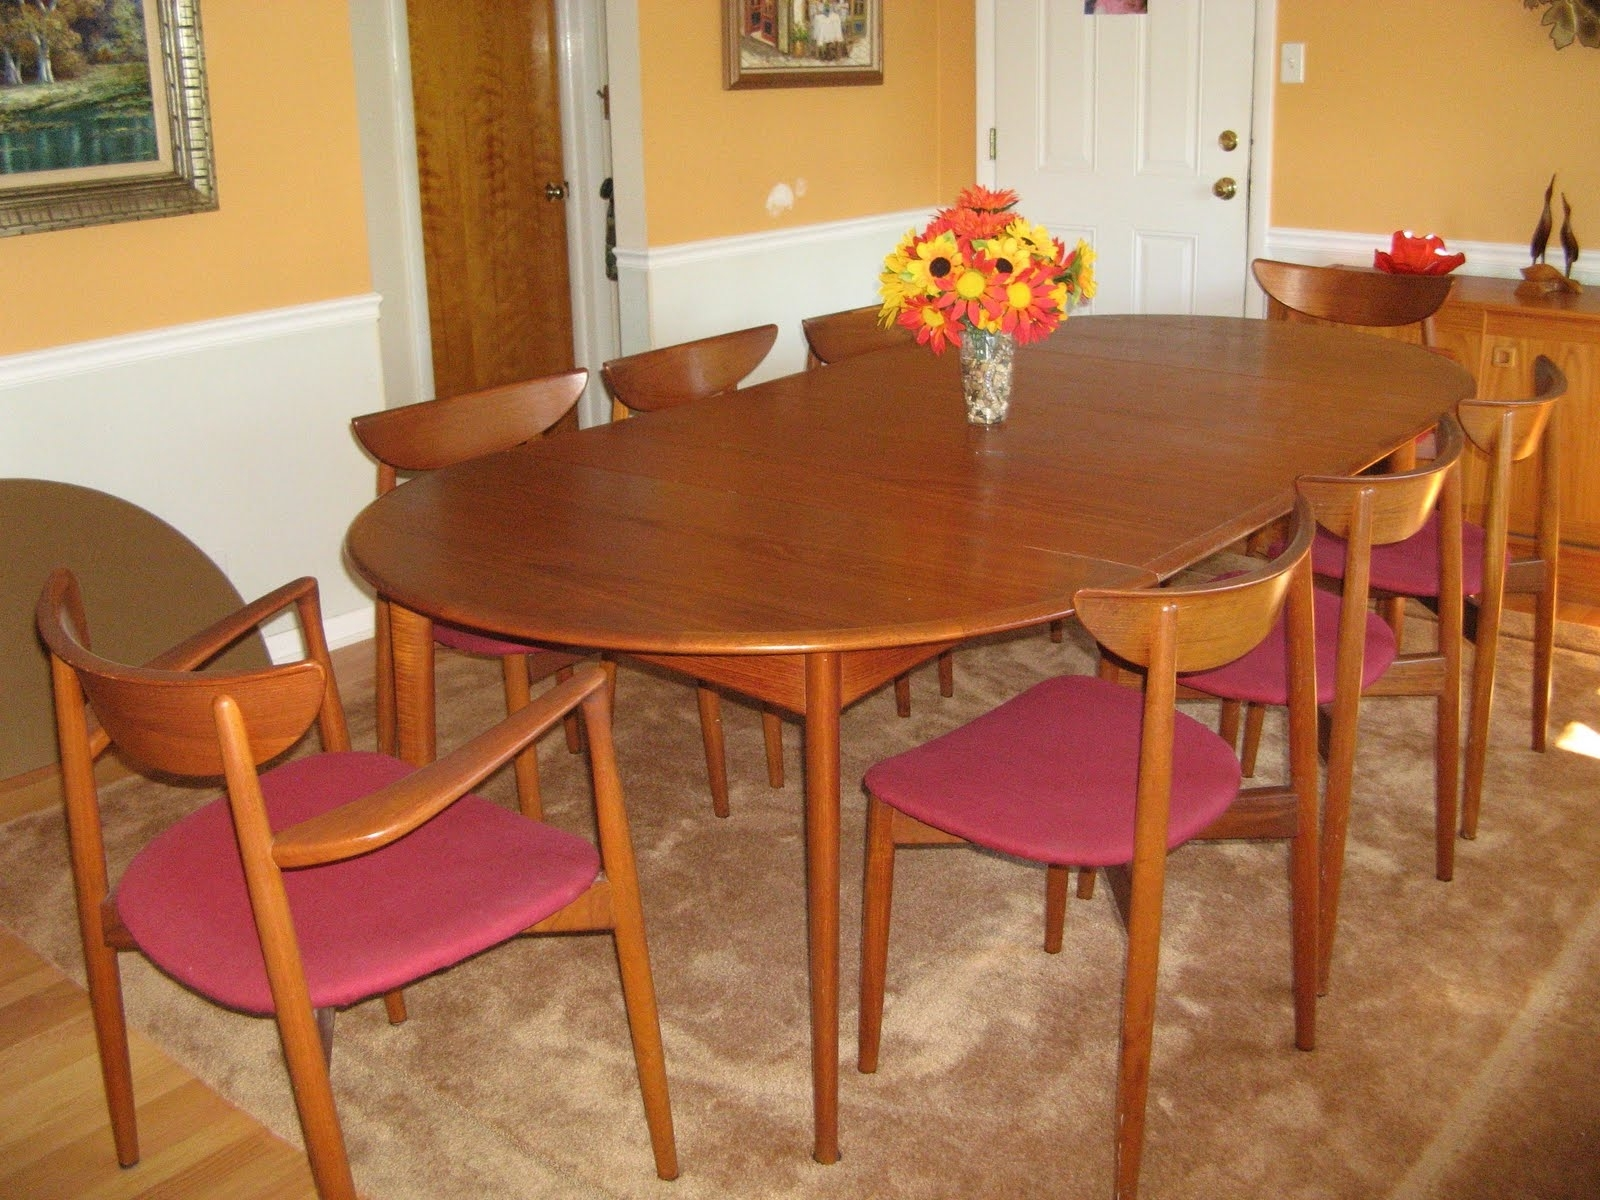 Natural Brown Teak Wood Leather Dining Chairs Intended For Best And Newest Perfect Summer With Teak Patio Dining Set — Teak Furnituresteak (Gallery 19 of 20)